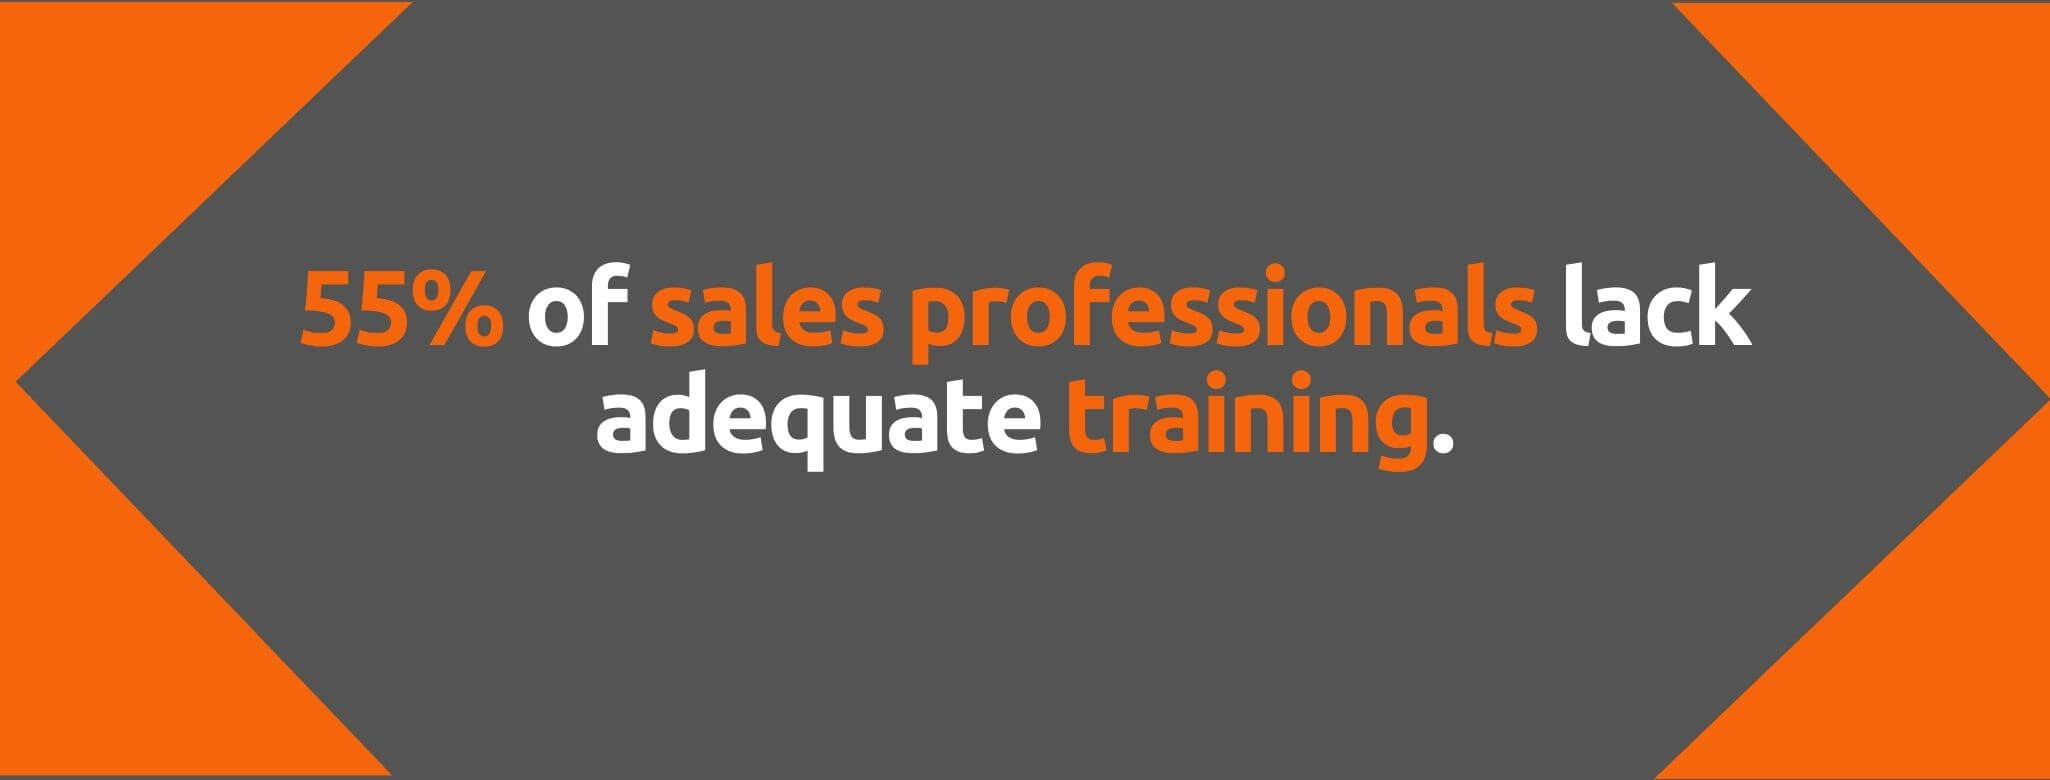 55% of sales professionals lack adequate training - 91 Sales Stats You Can't Afford to Miss - Replyco Helpdesk Software for eCommerce